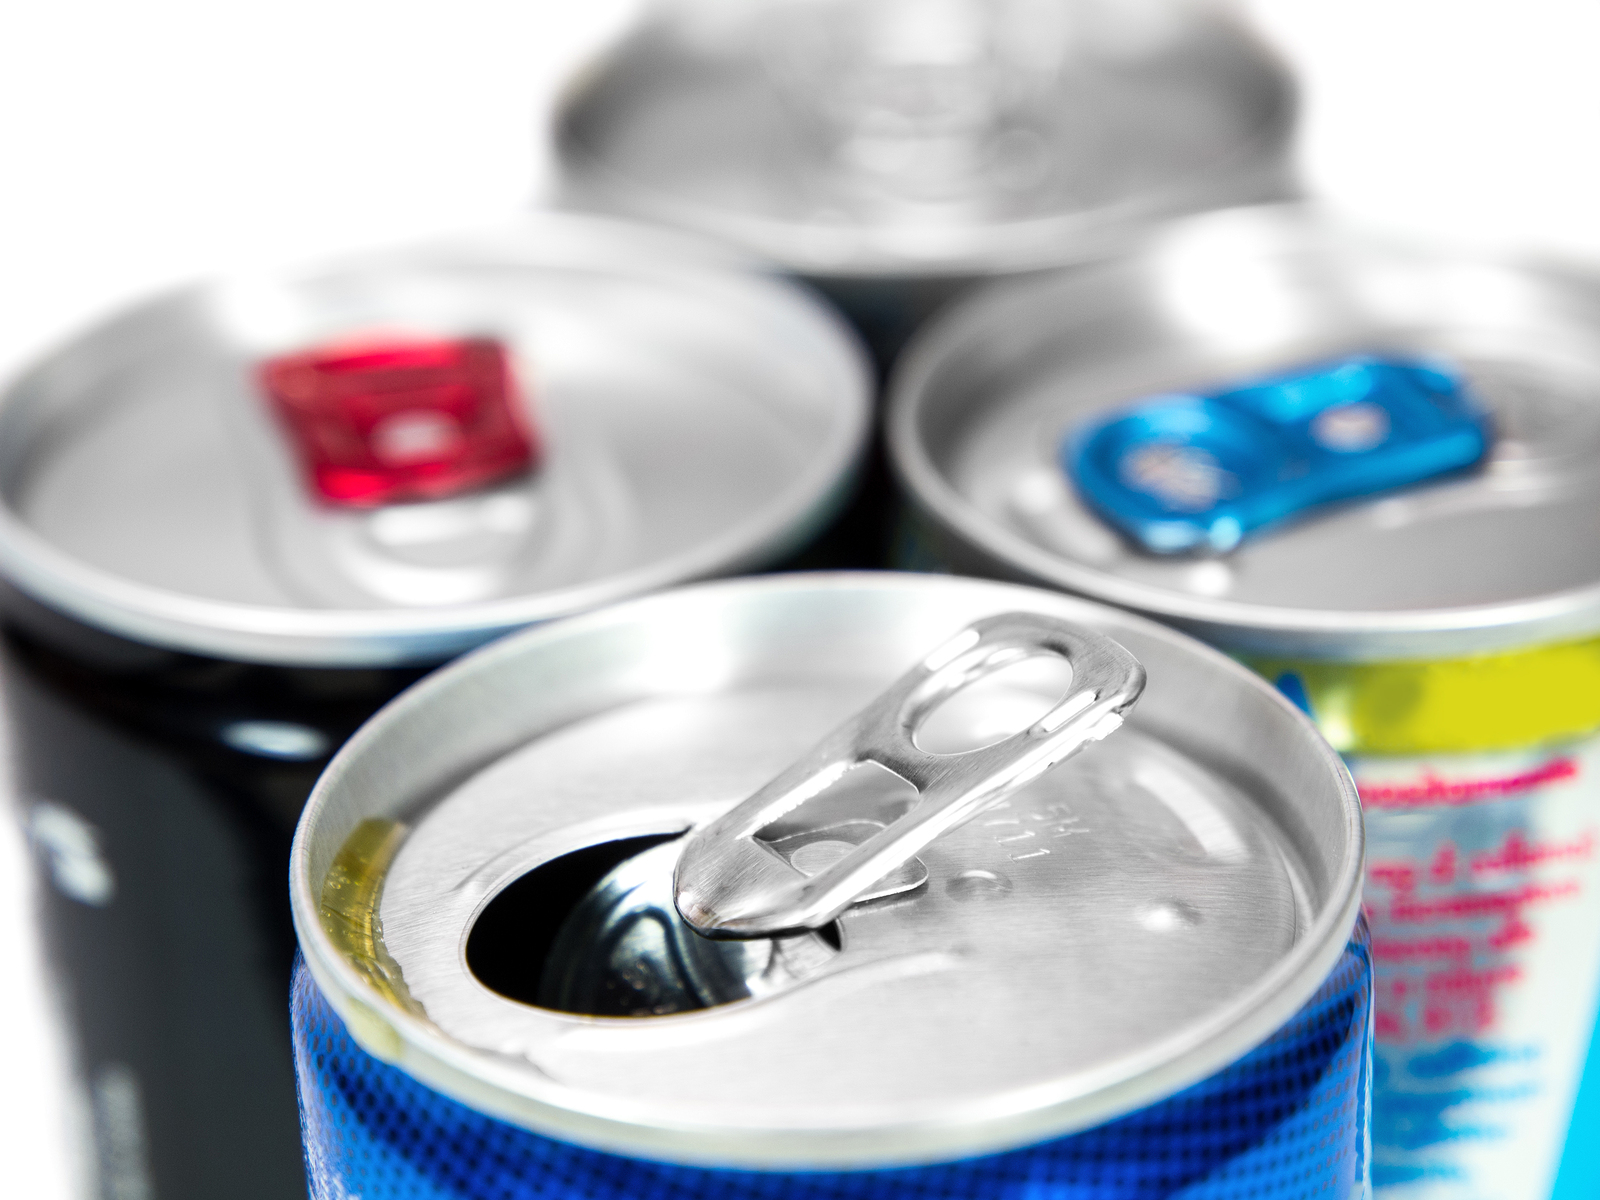 bigstock-Energy-drink-cans-48728915